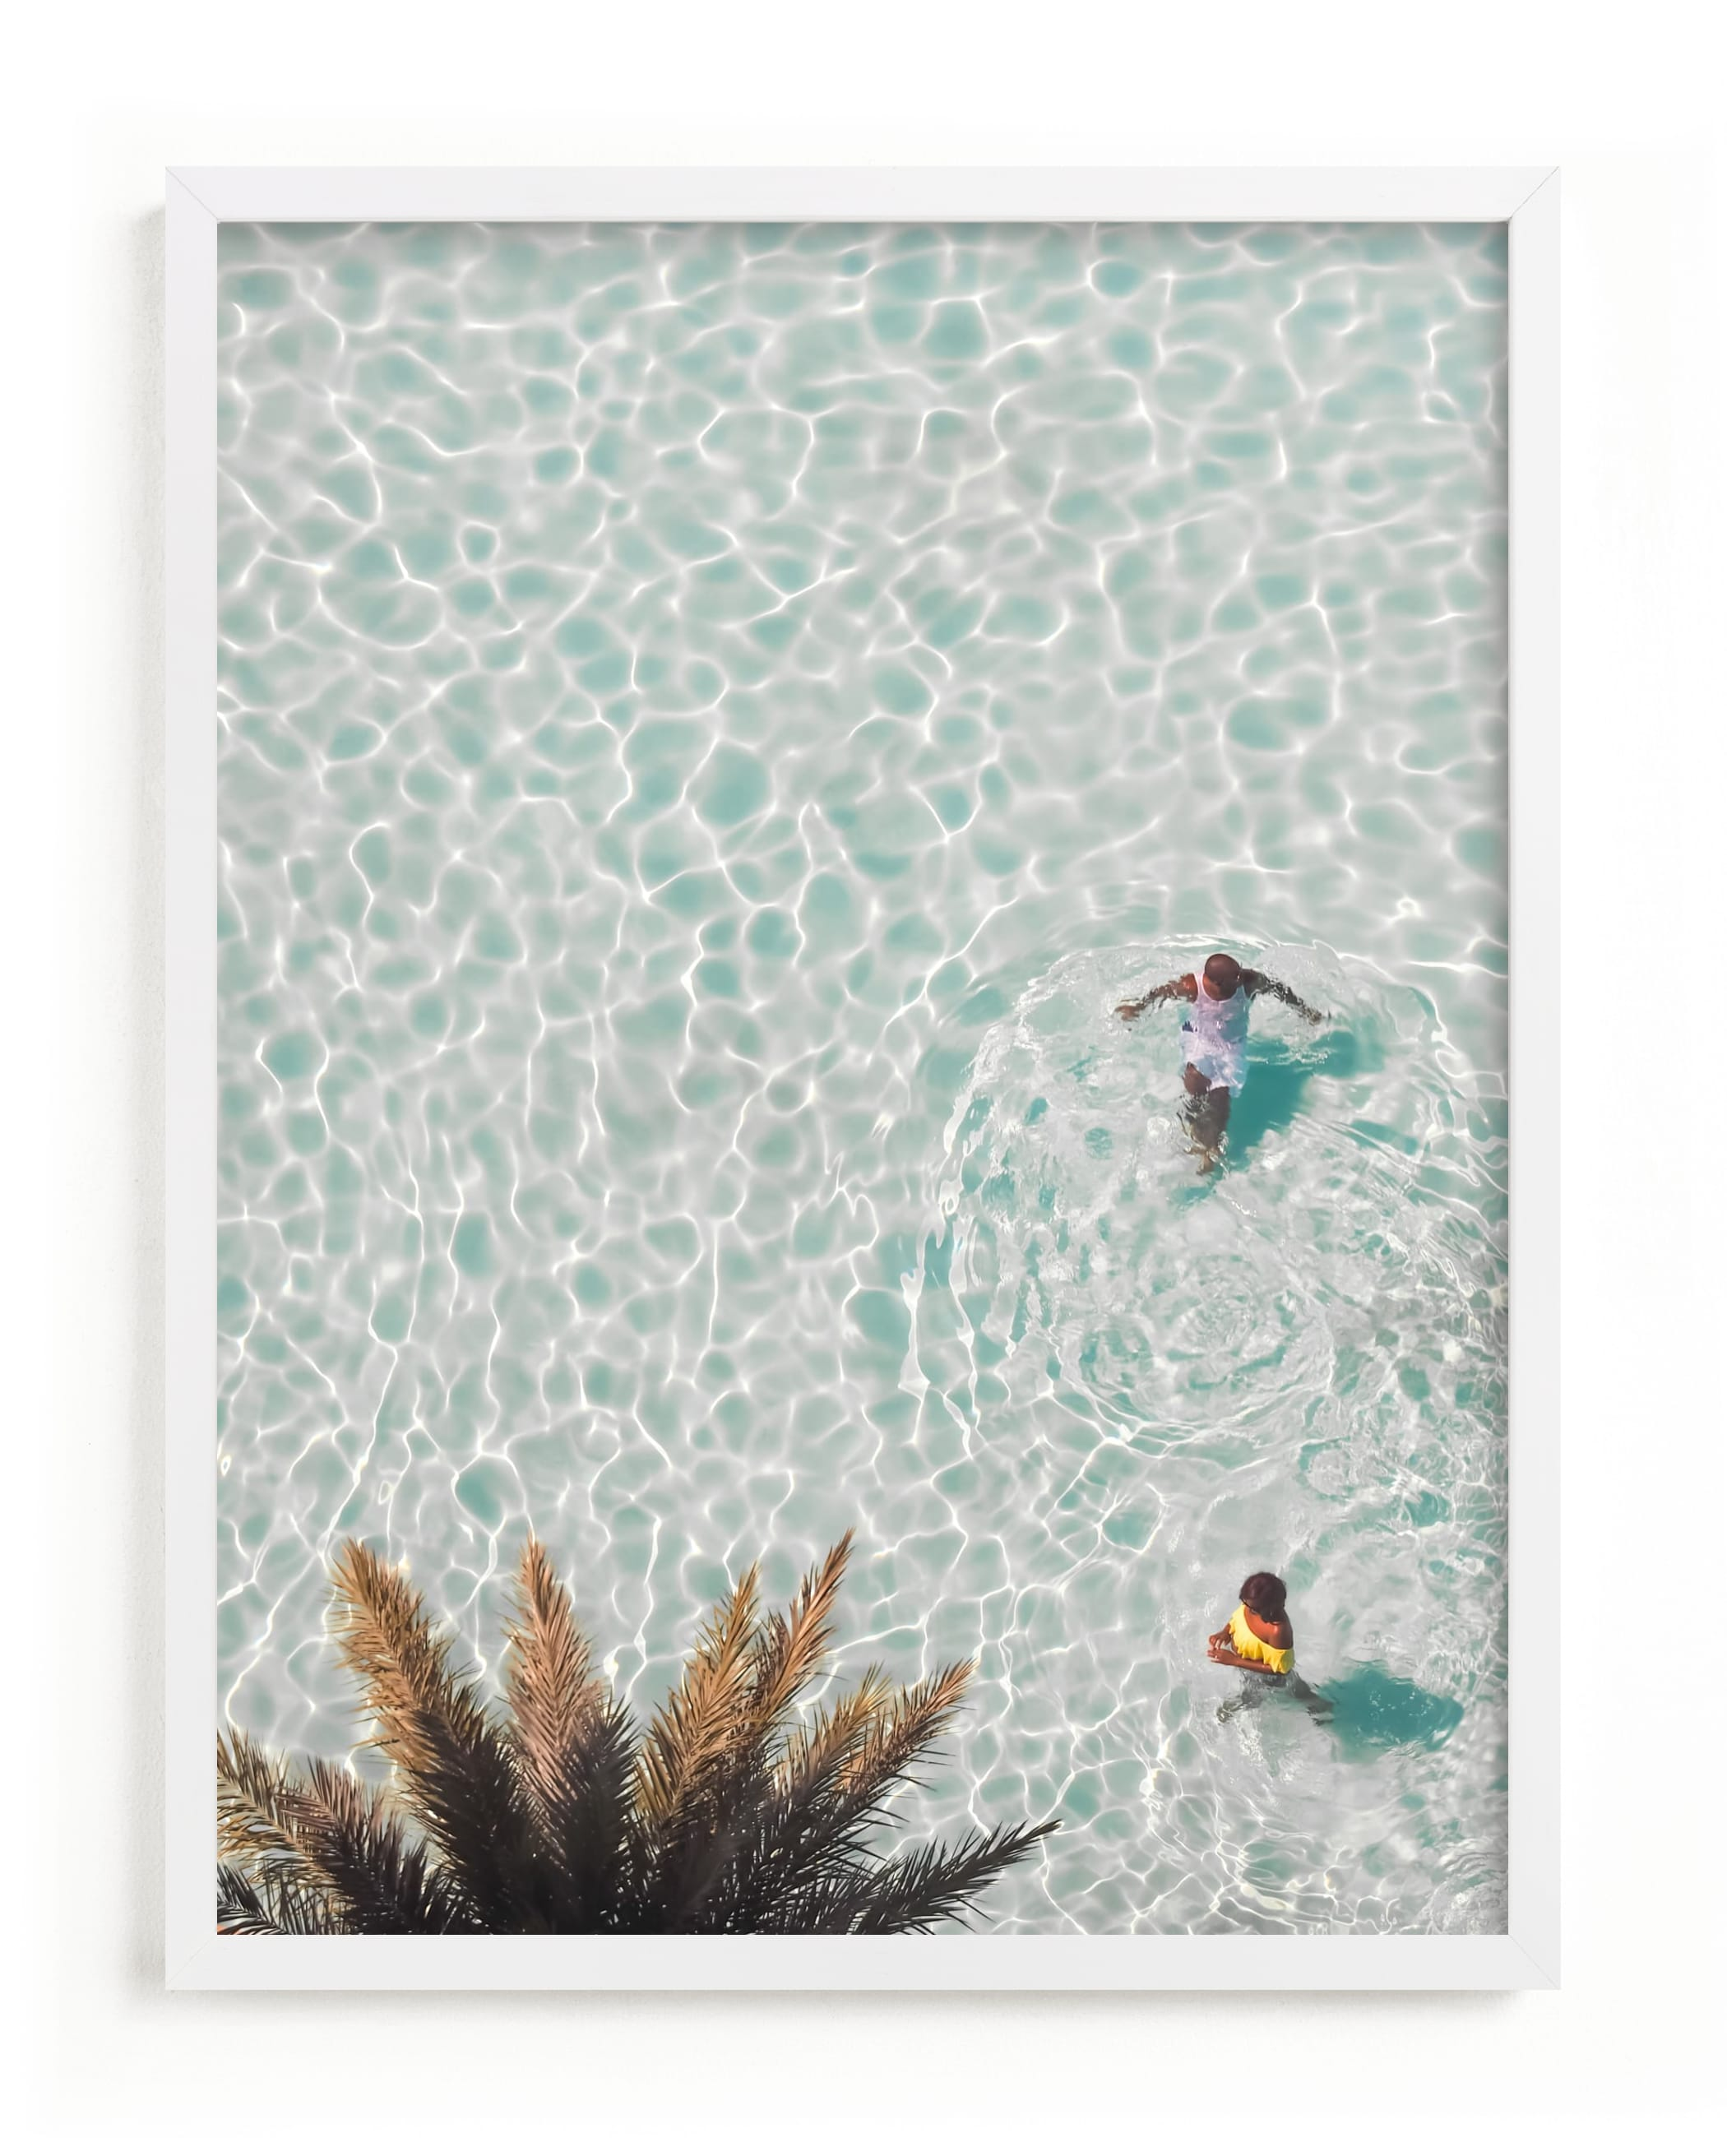 This is a blue art by KIMBERLY SMITH called Pool Party for Two.